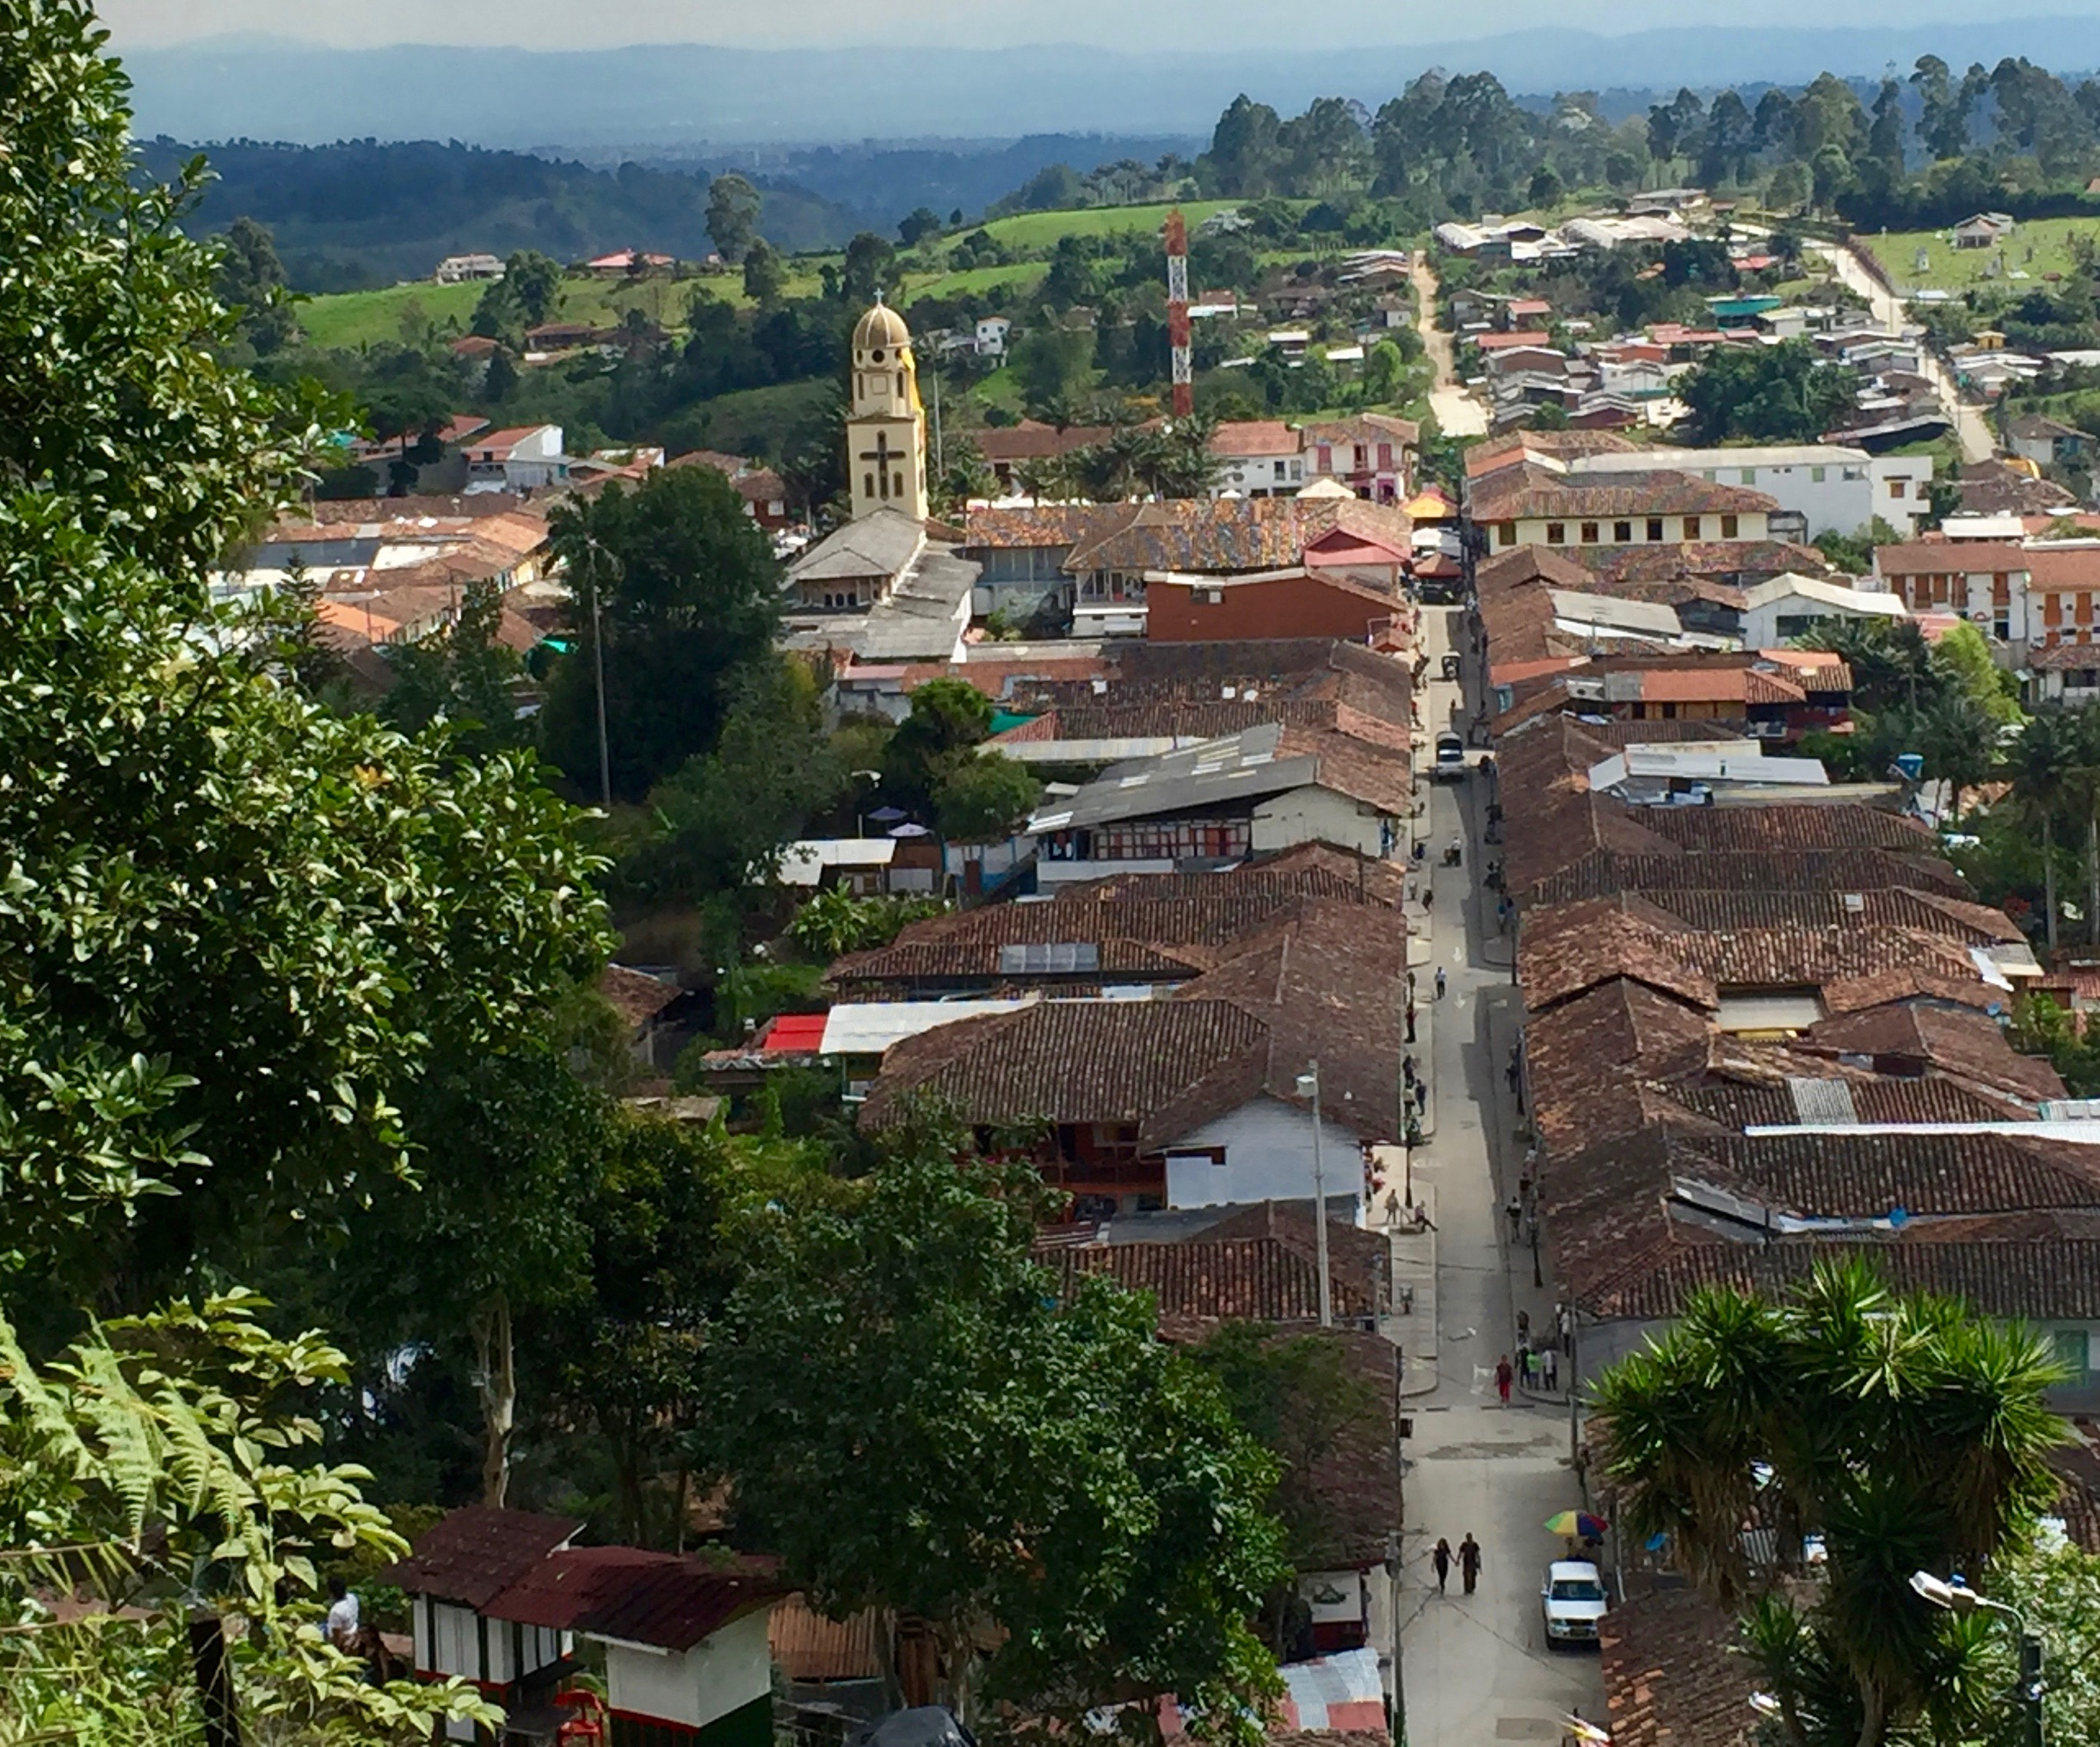 View of Salento, Colombia, from the top of the stairs that lead to a view of the city. (Photo: Jim Intriglia)